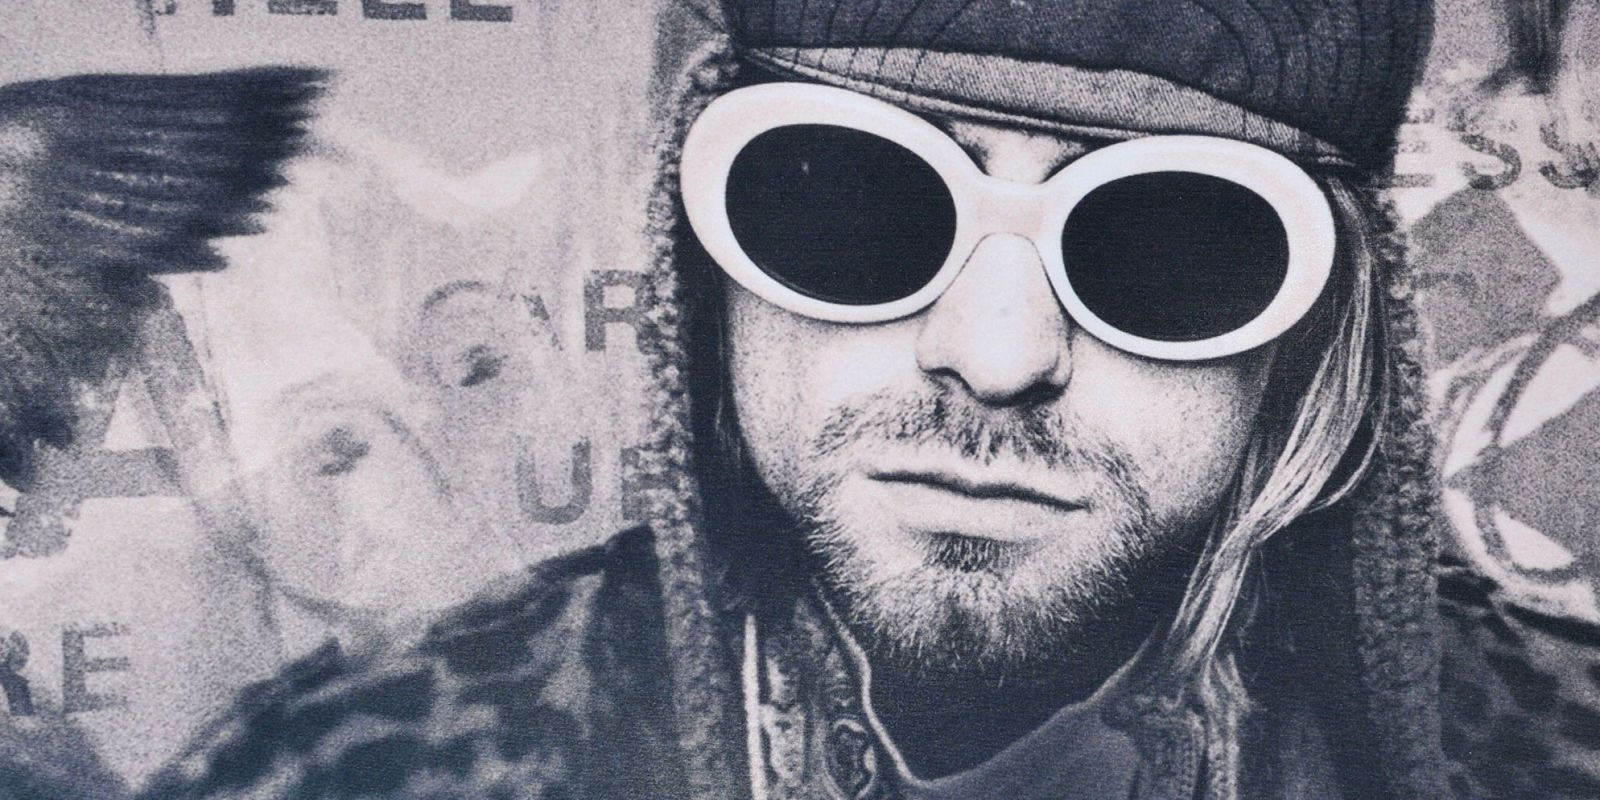 How Kurt Cobains Iconic Sunglasses Became a HipHop Style